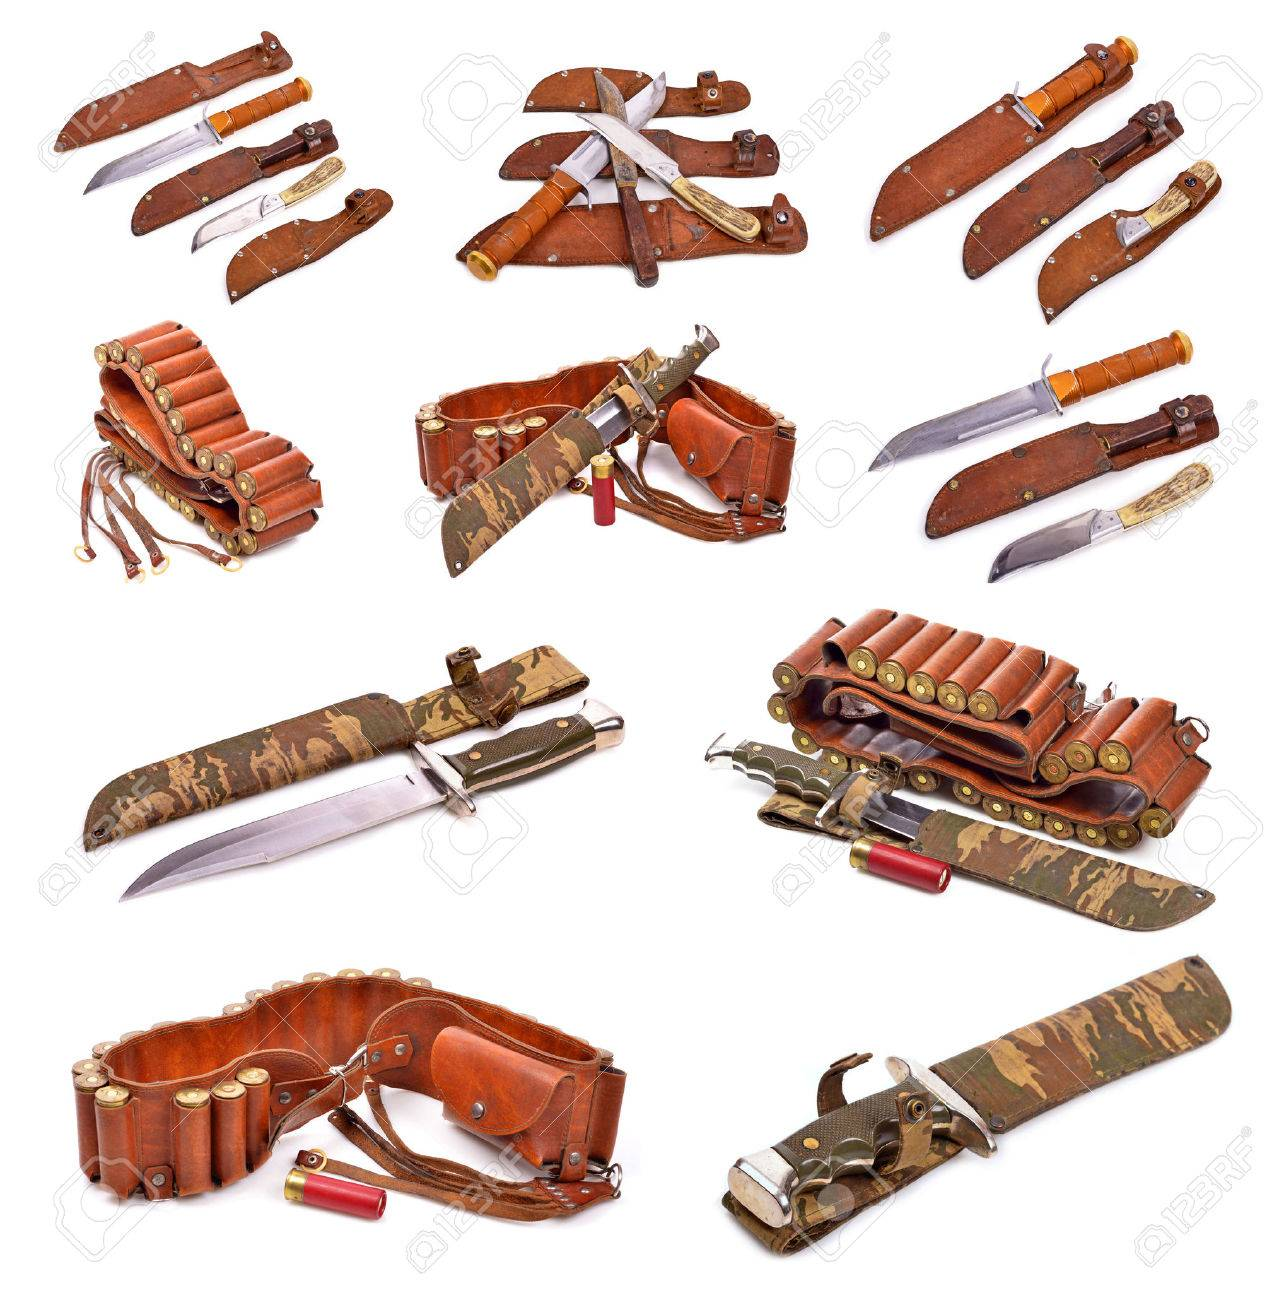 hunting accessories old leather bandolier, old hunting knife..